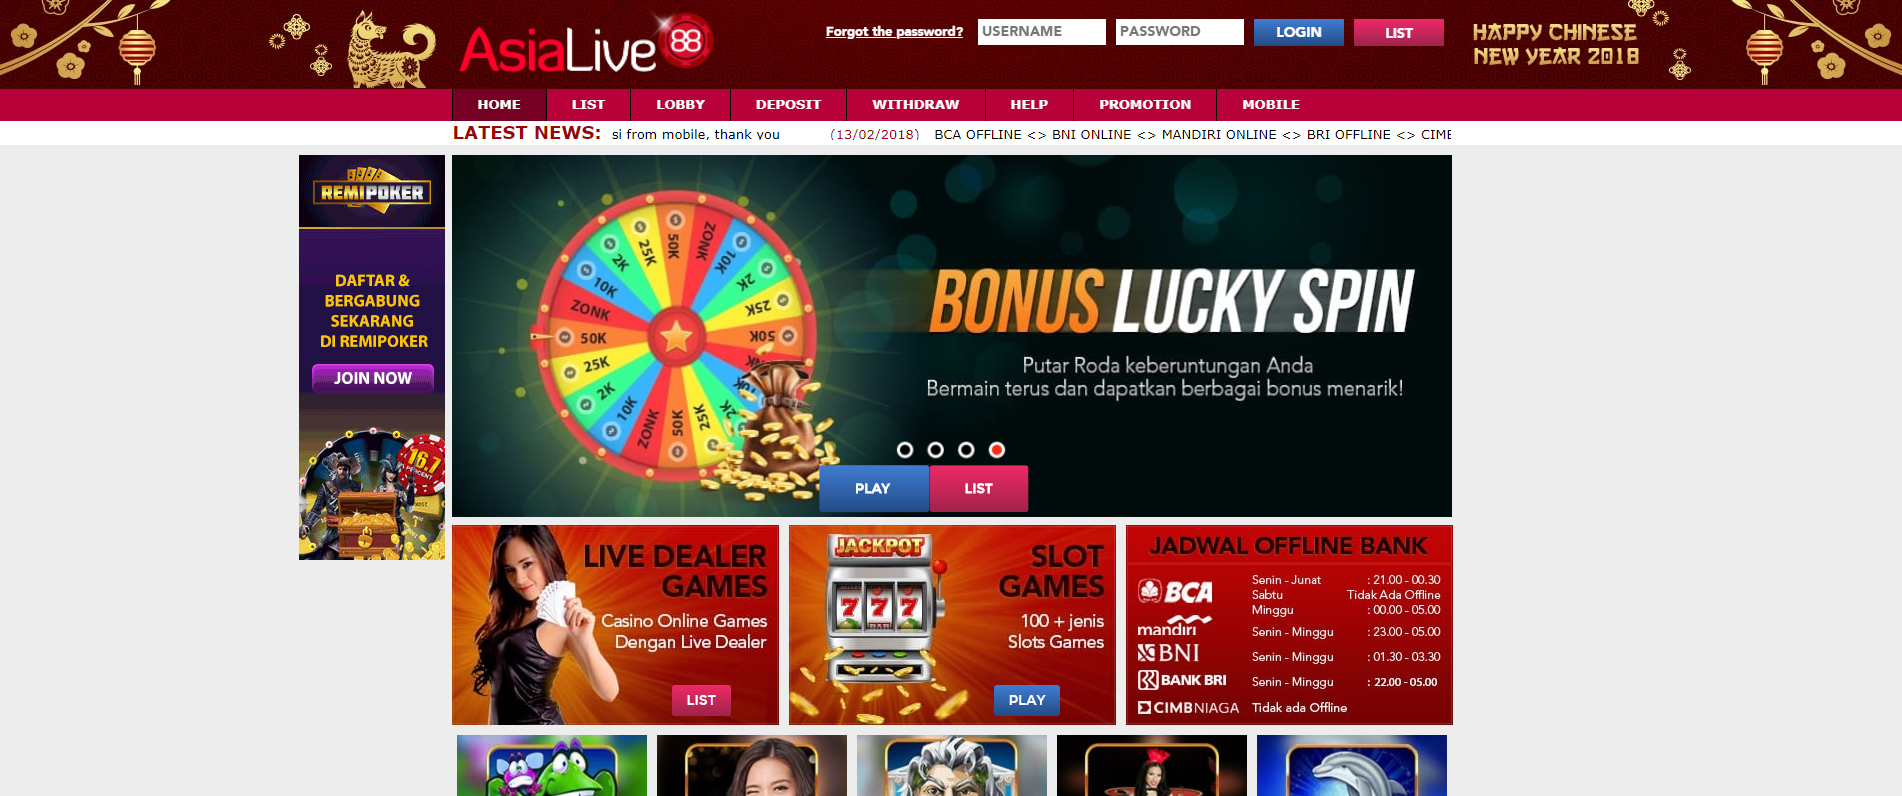 AsiaLive88 Casino Review